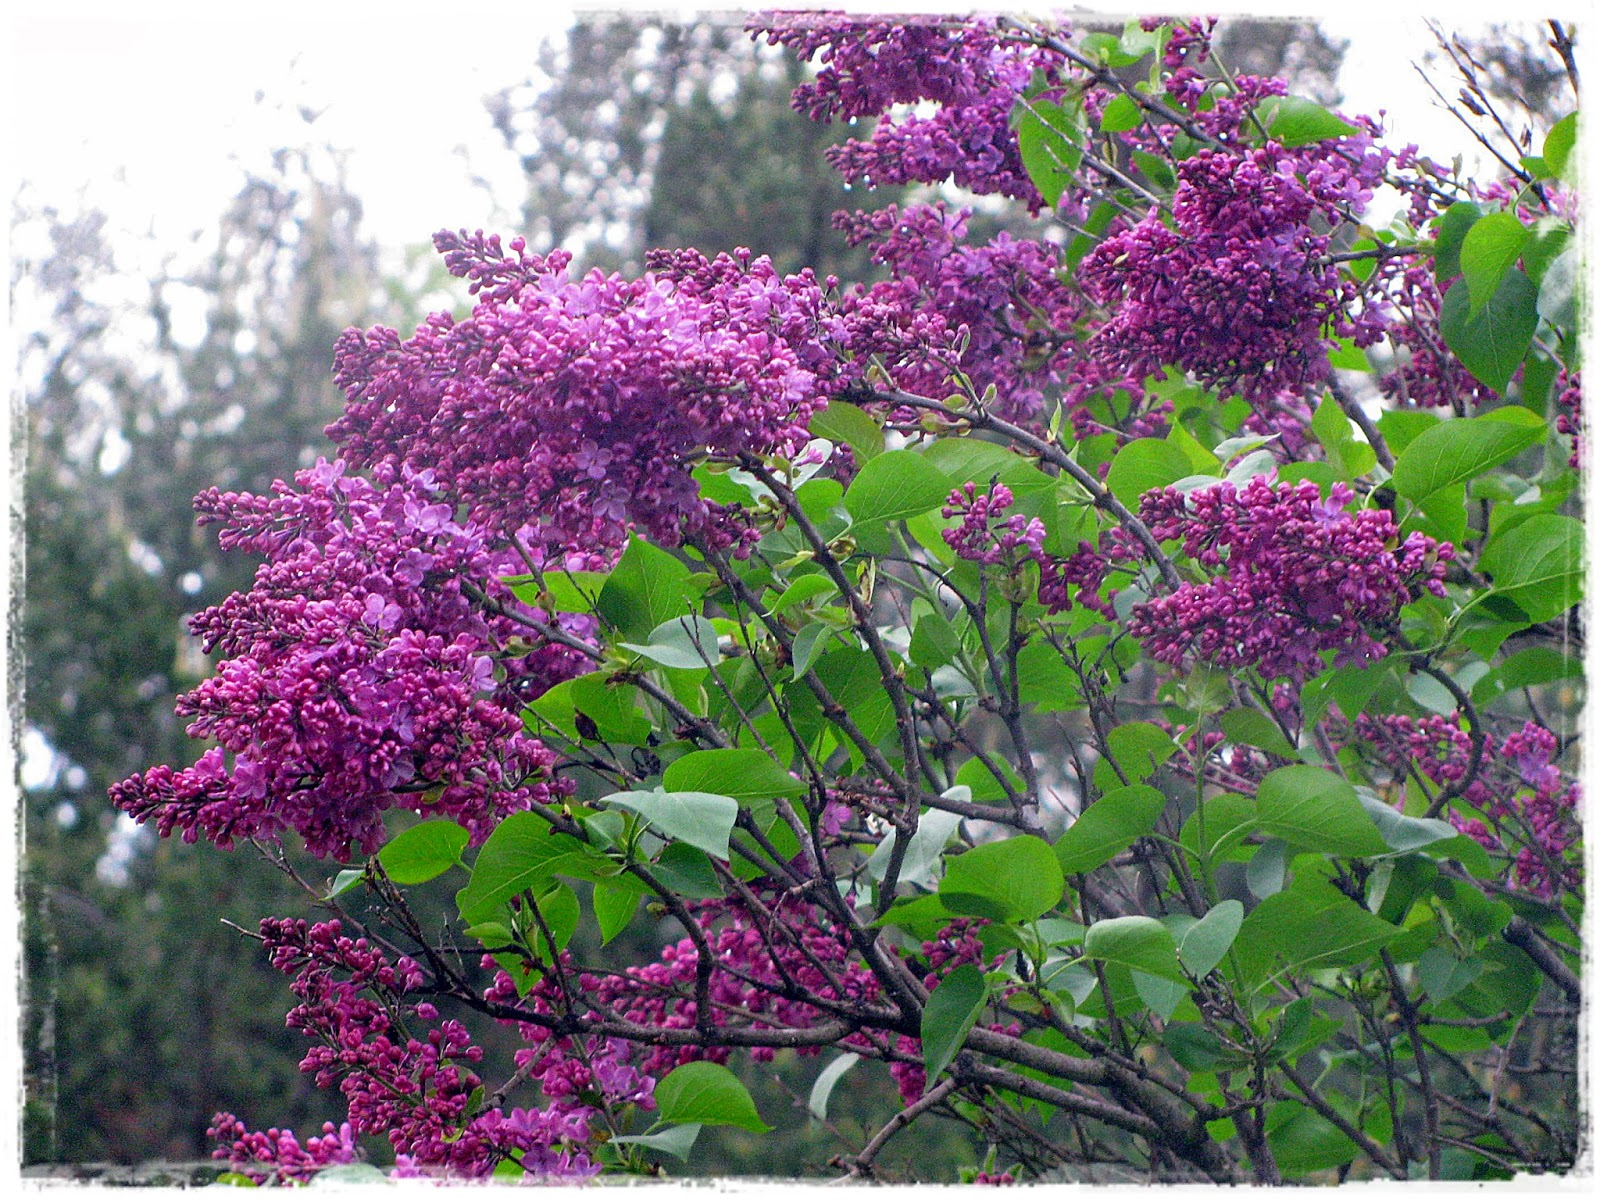 Applestone Cottage: It's a lilac festival at my house!